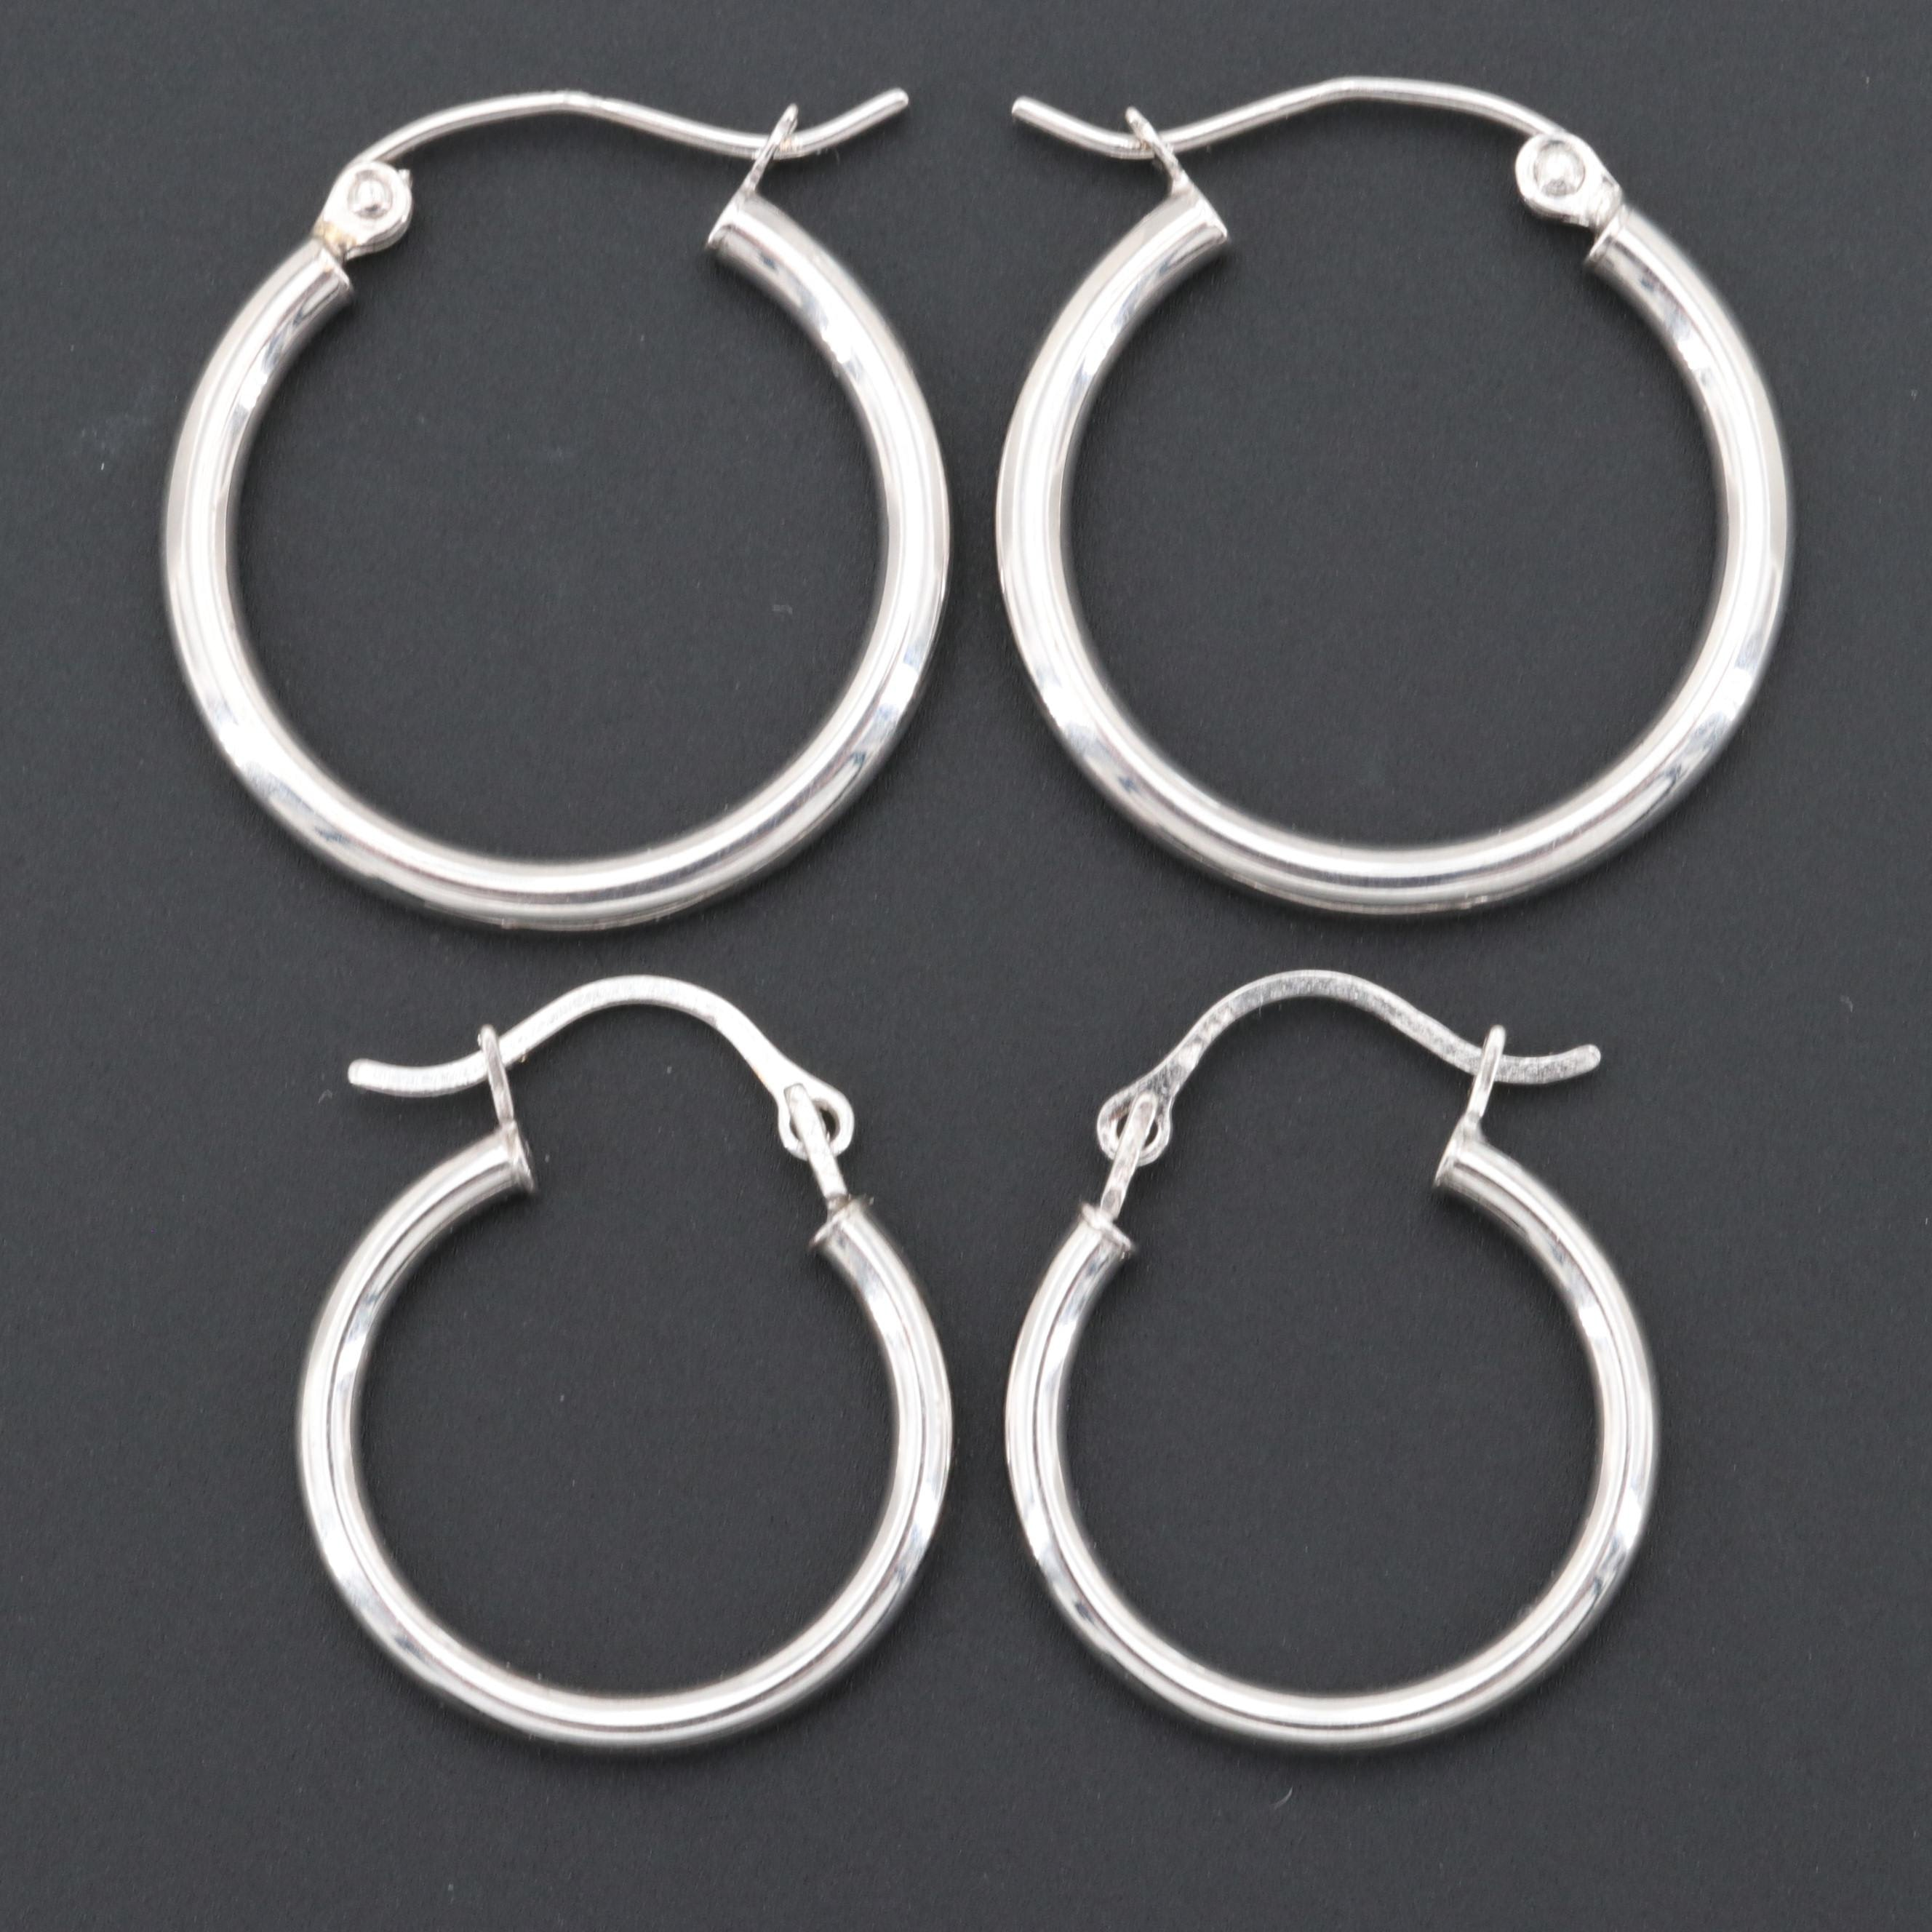 14K White Gold and Silver Tone Hoop Earrings